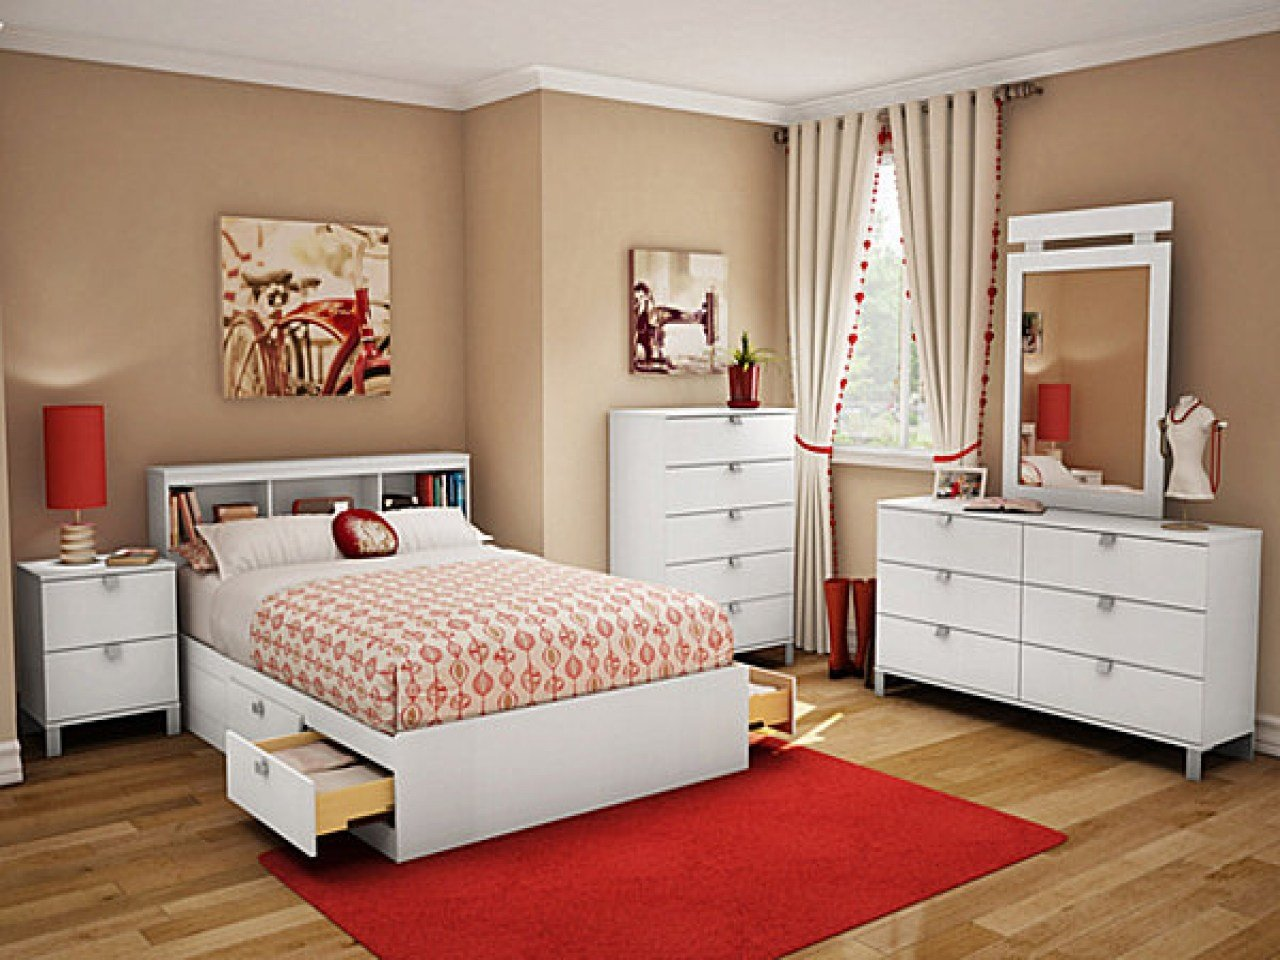 Best Quirky Bedroom Decor Modern T**N Girl Bedroom Ideas Cool T**N Girl Bedrooms Paris Bedroom With Pictures